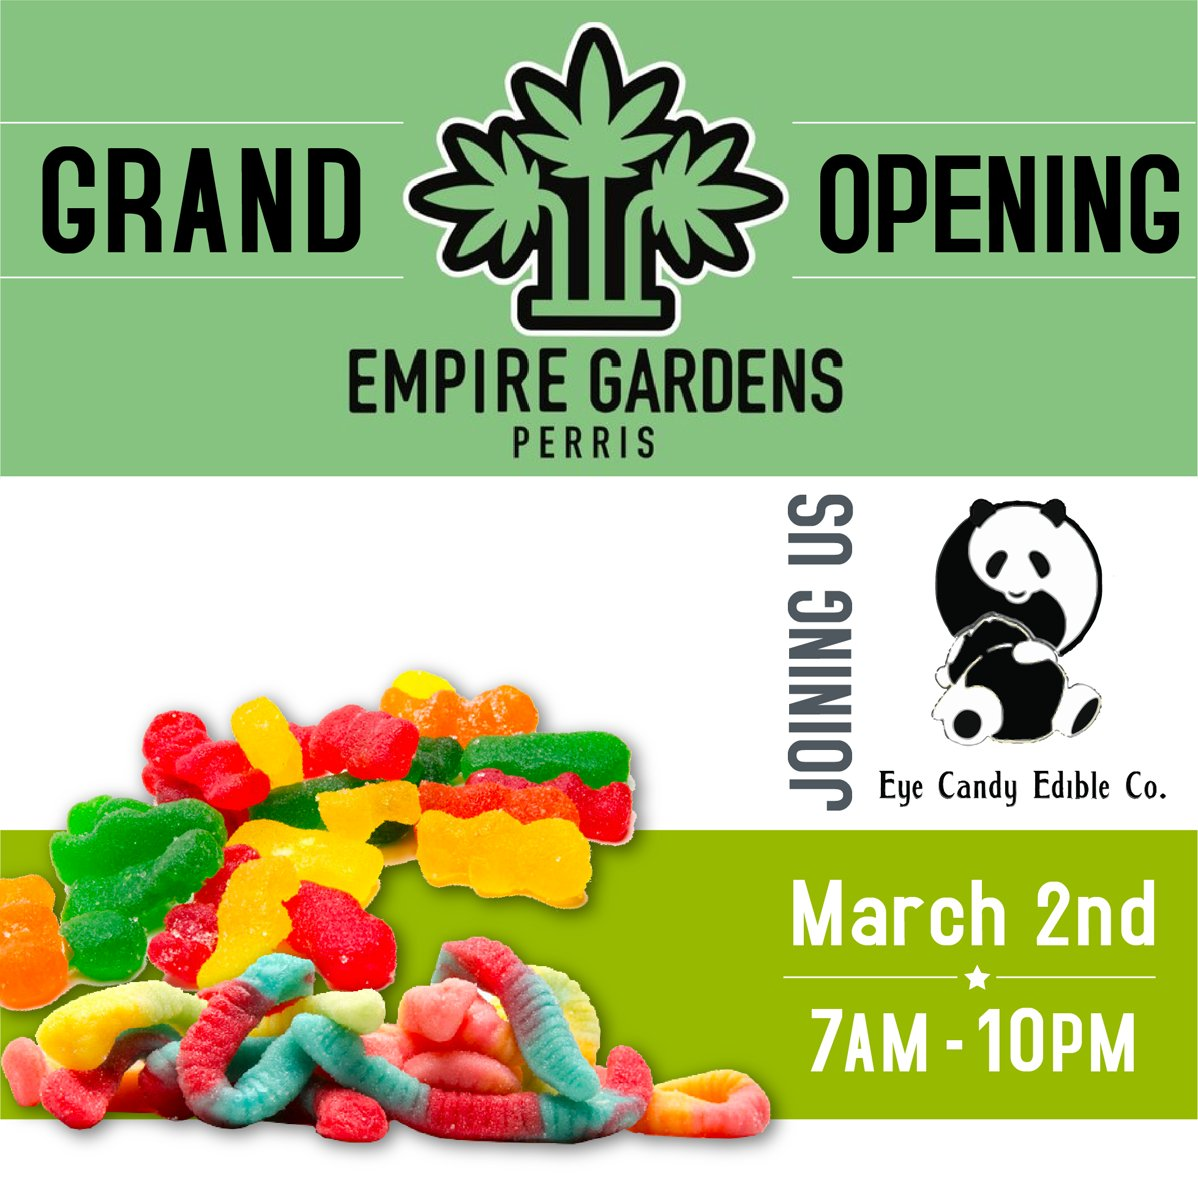 And for those of you that have a sweet tooth... in other words EVERYONE! Let's not forget our friends at Eye Candy Edibles that will be joining us tomorrow too!!! #eyecandyedibles #kushcandy #eyecandyedibleco #realempiregardens #empiregardens #grandopening #freebies #freestuff